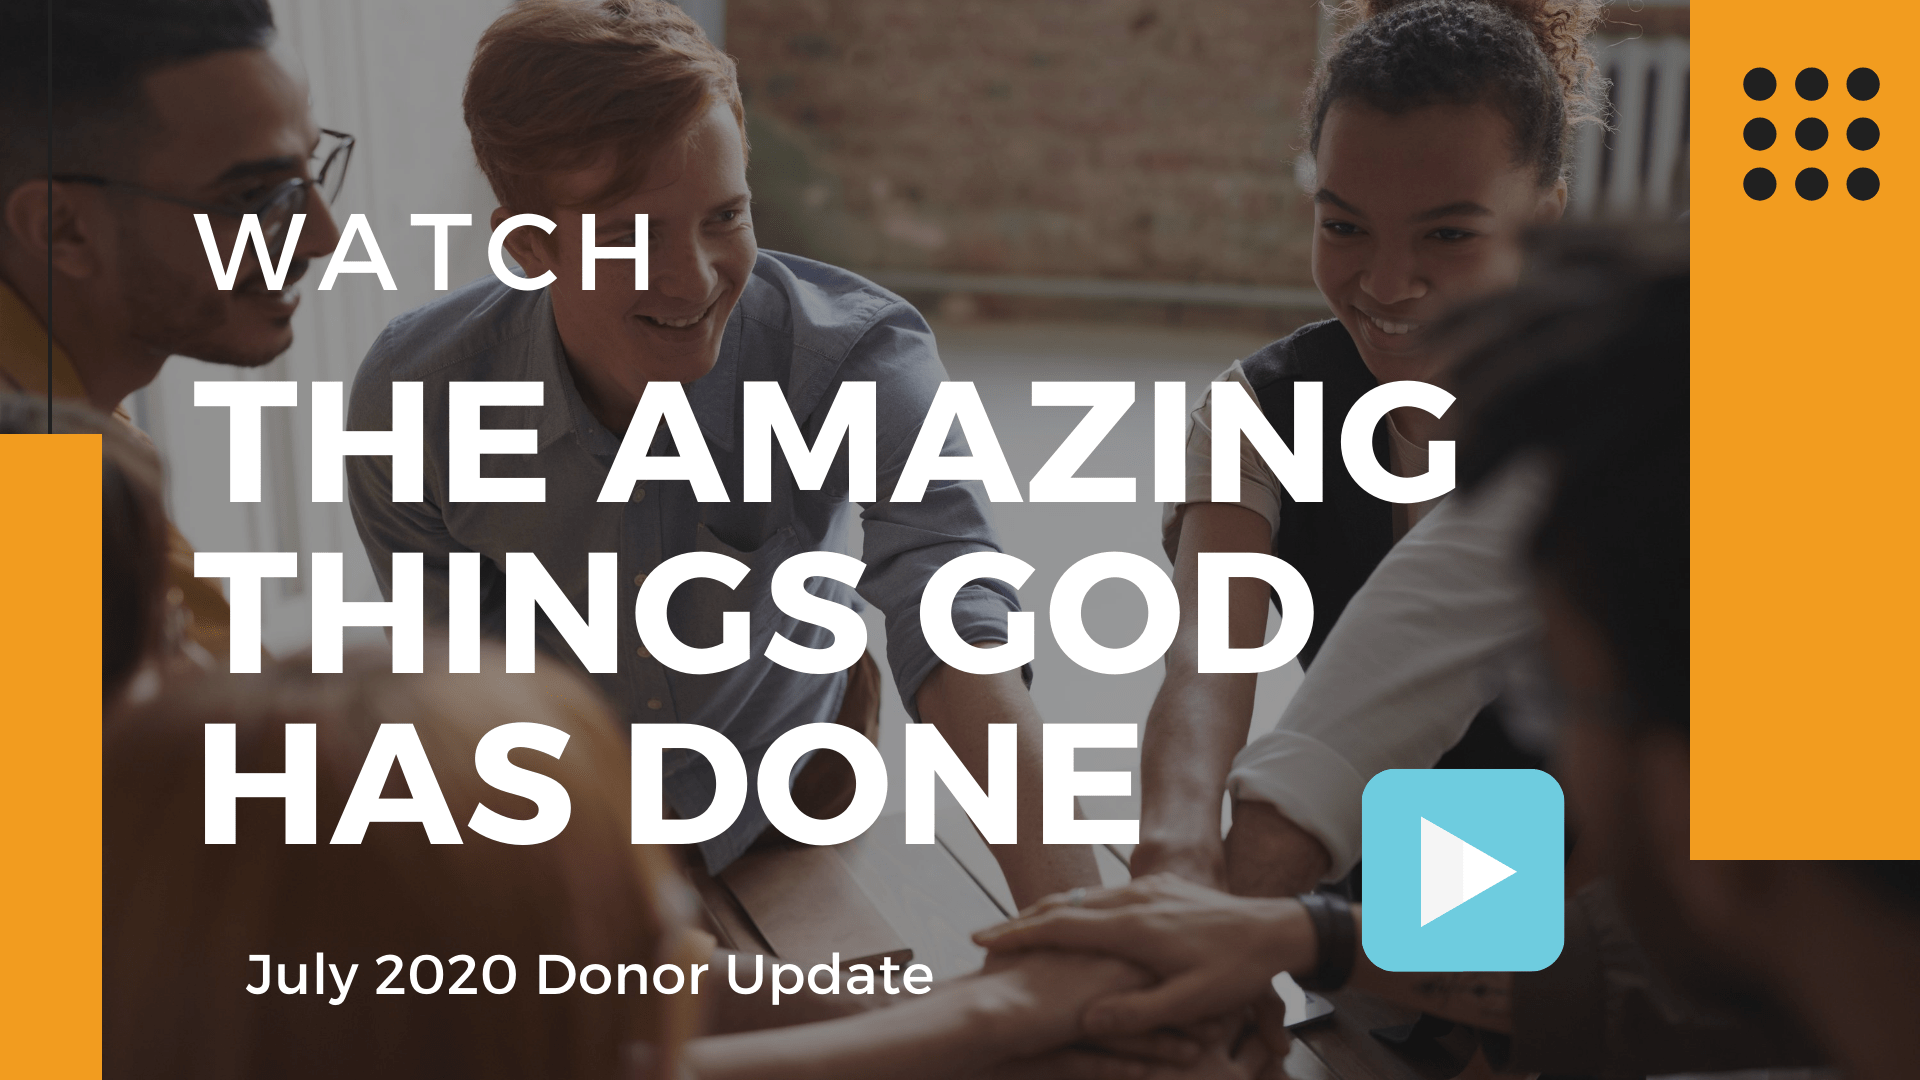 July 2020 Donor Update